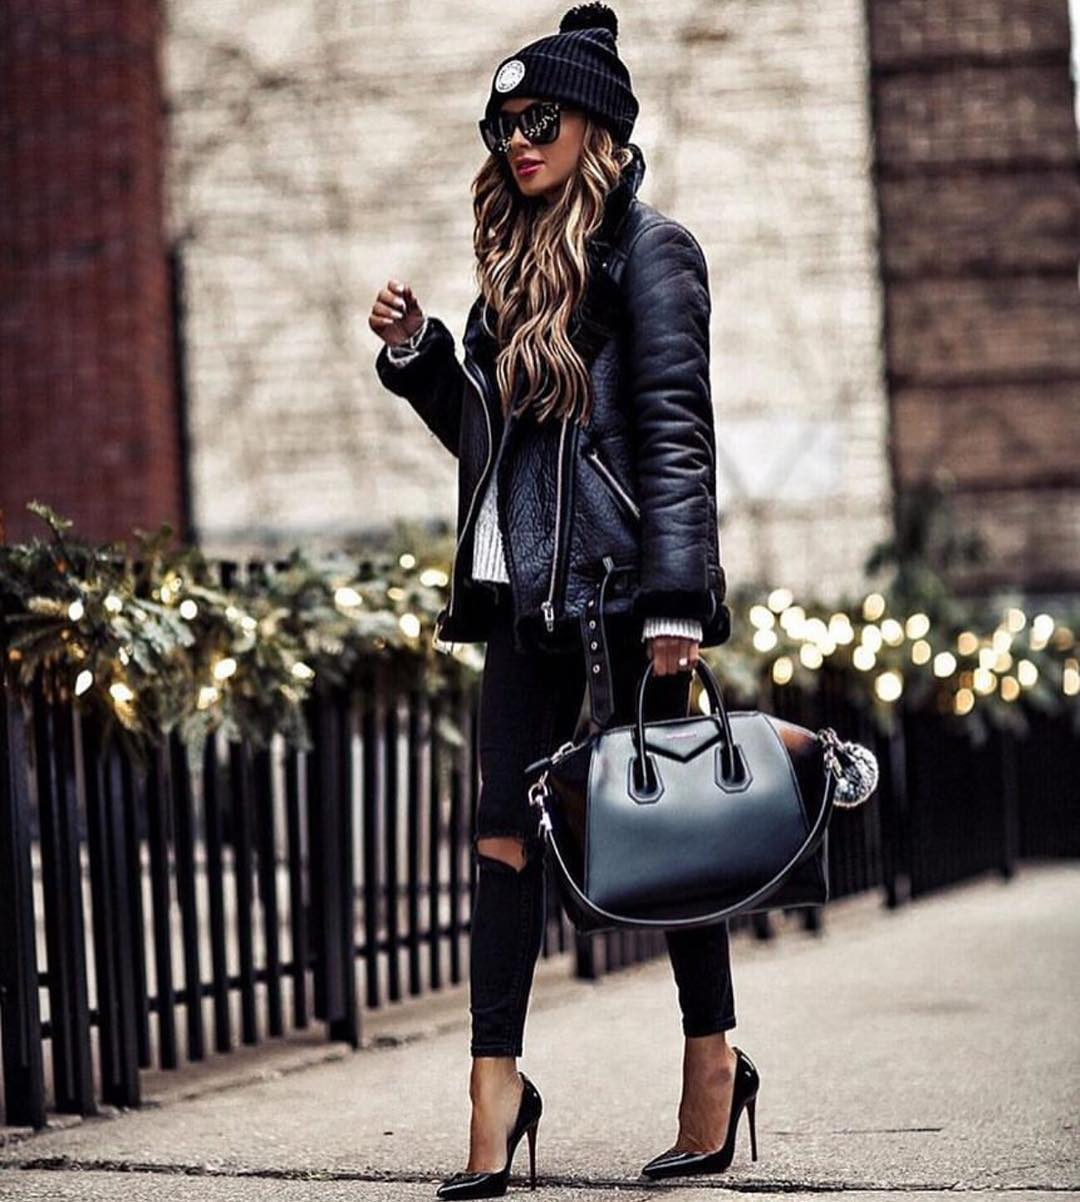 All Black Fall Outfit For Casual Street Walks: Aviator Jacket And Ripped Jeans 2021